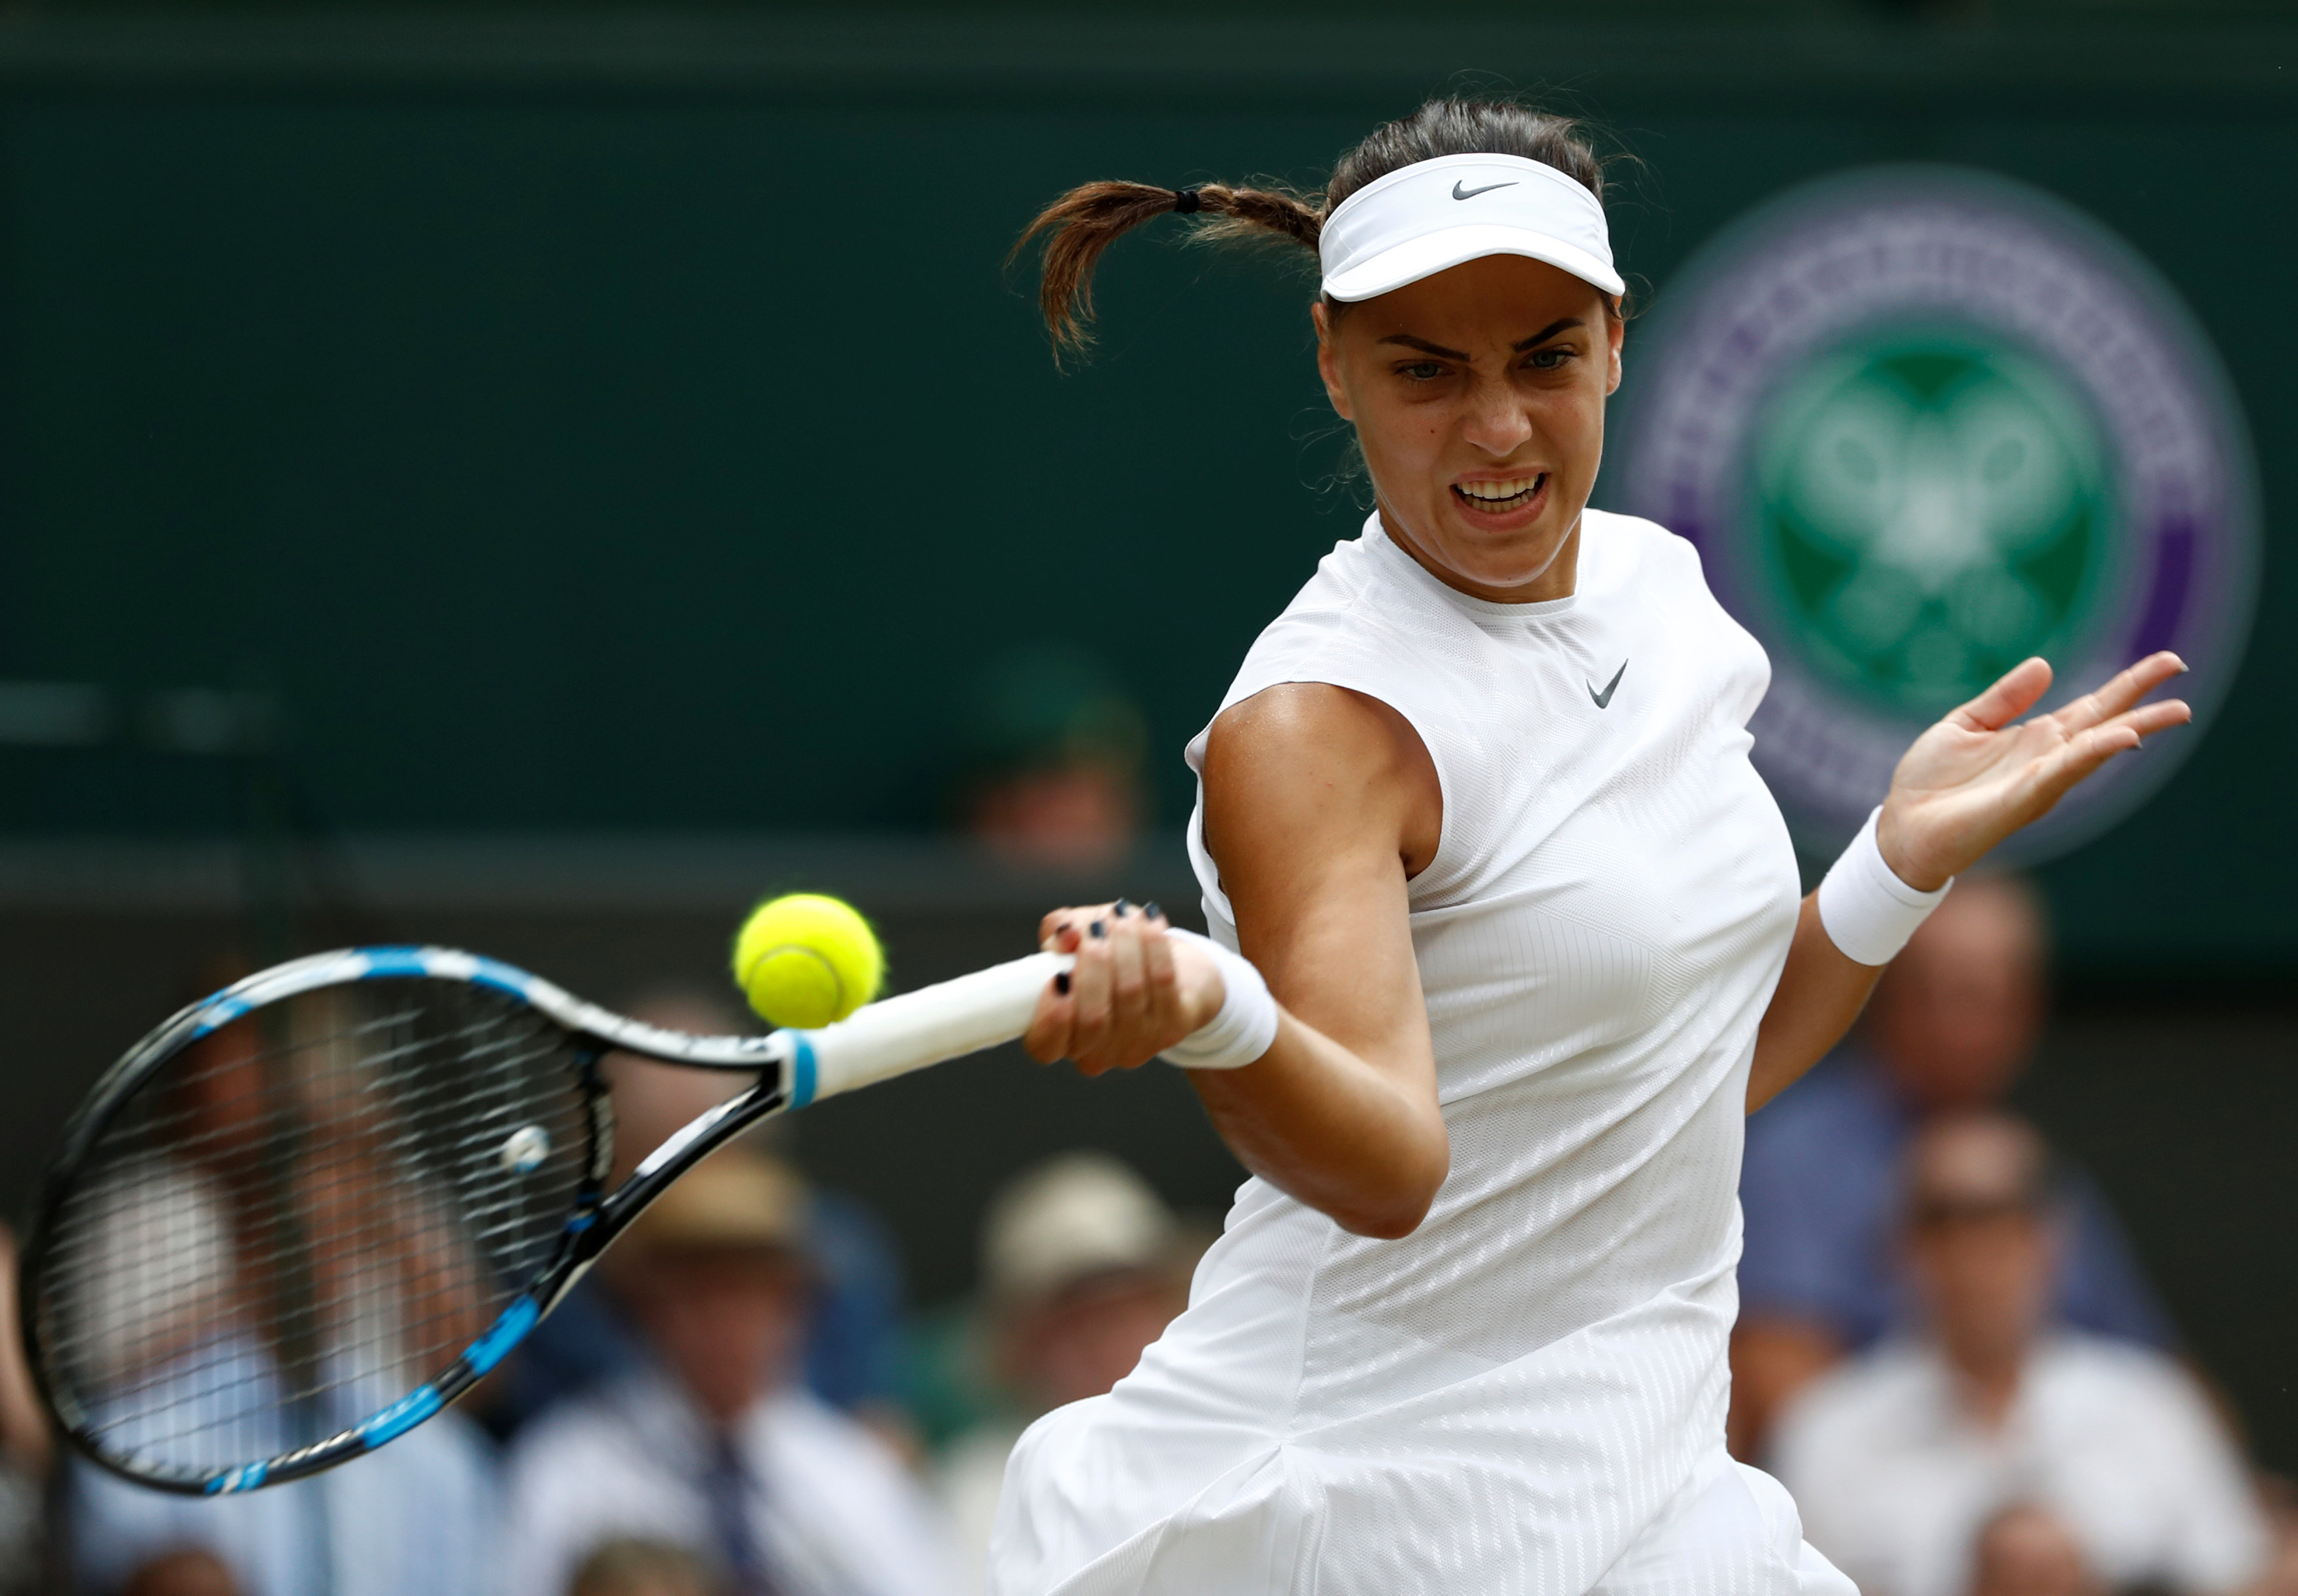 Tennis - Wimbledon - London, Britain - July 10, 2017   Croatia's Ana Konjuh in action during her fourth round match against Venus Williams of the U.S.     REUTERS/Stefan Wermuth